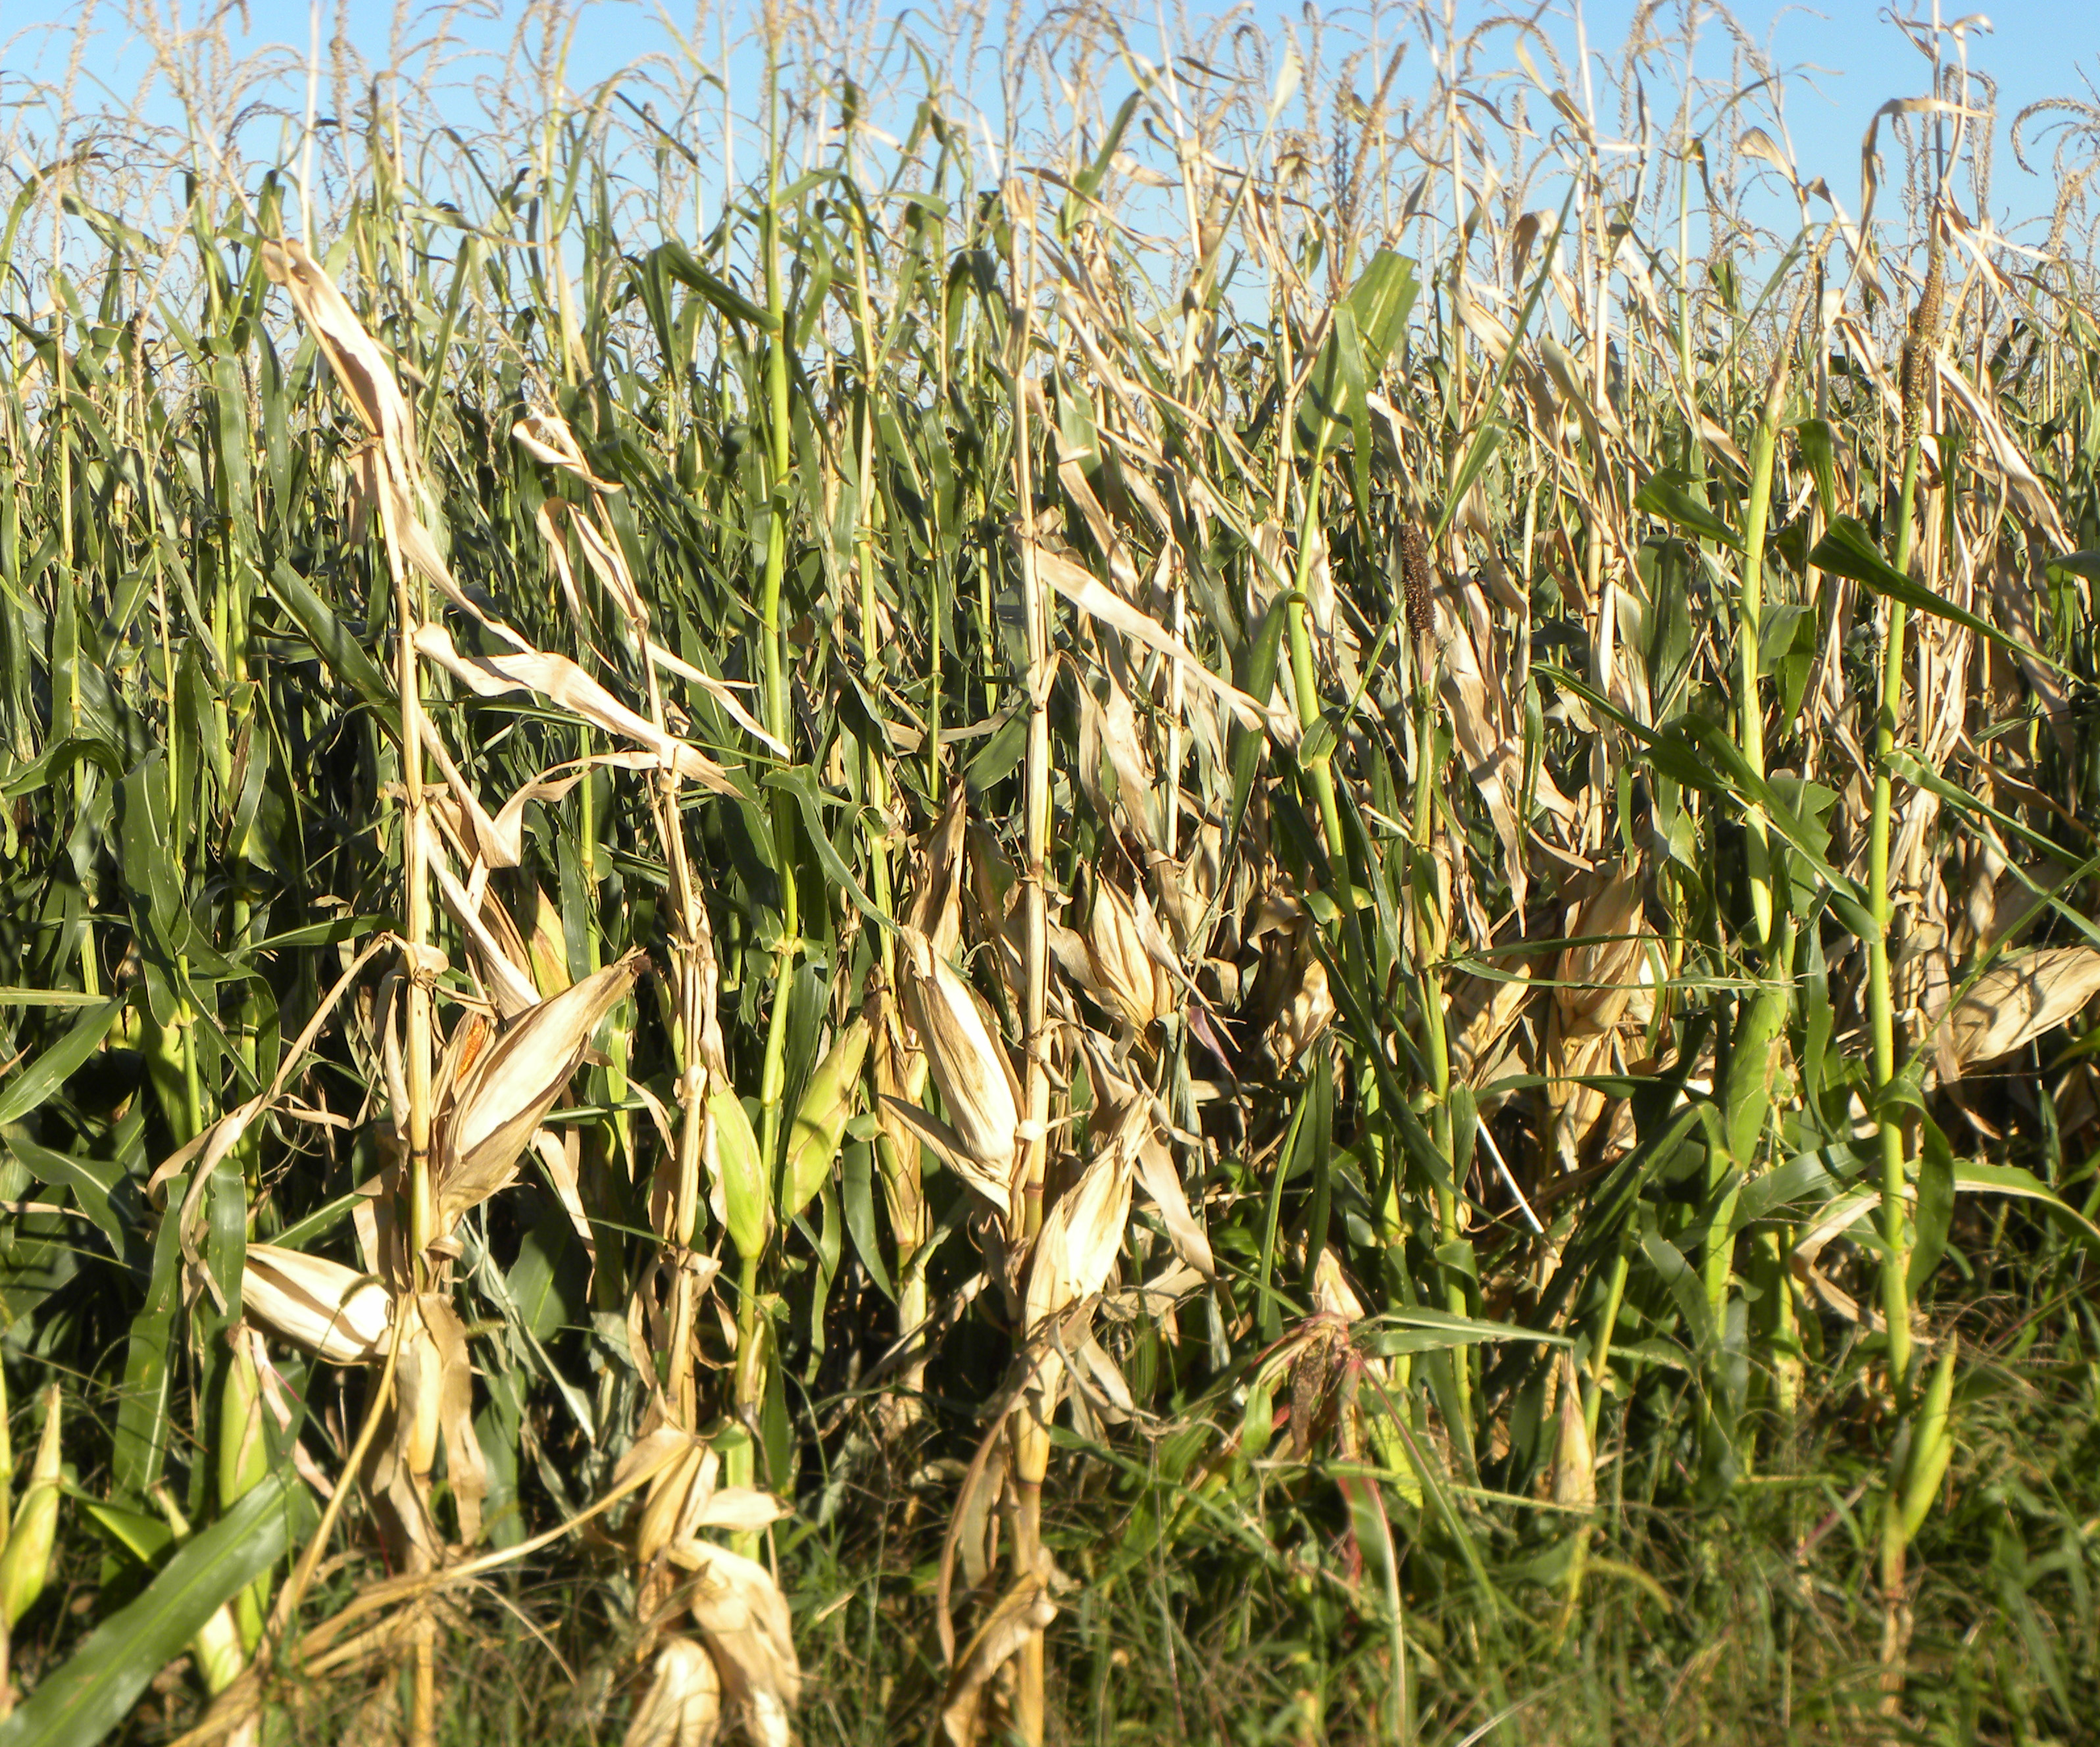 Stalk and Ear Rot Diseases Developing Early | 2015-08-31 ...